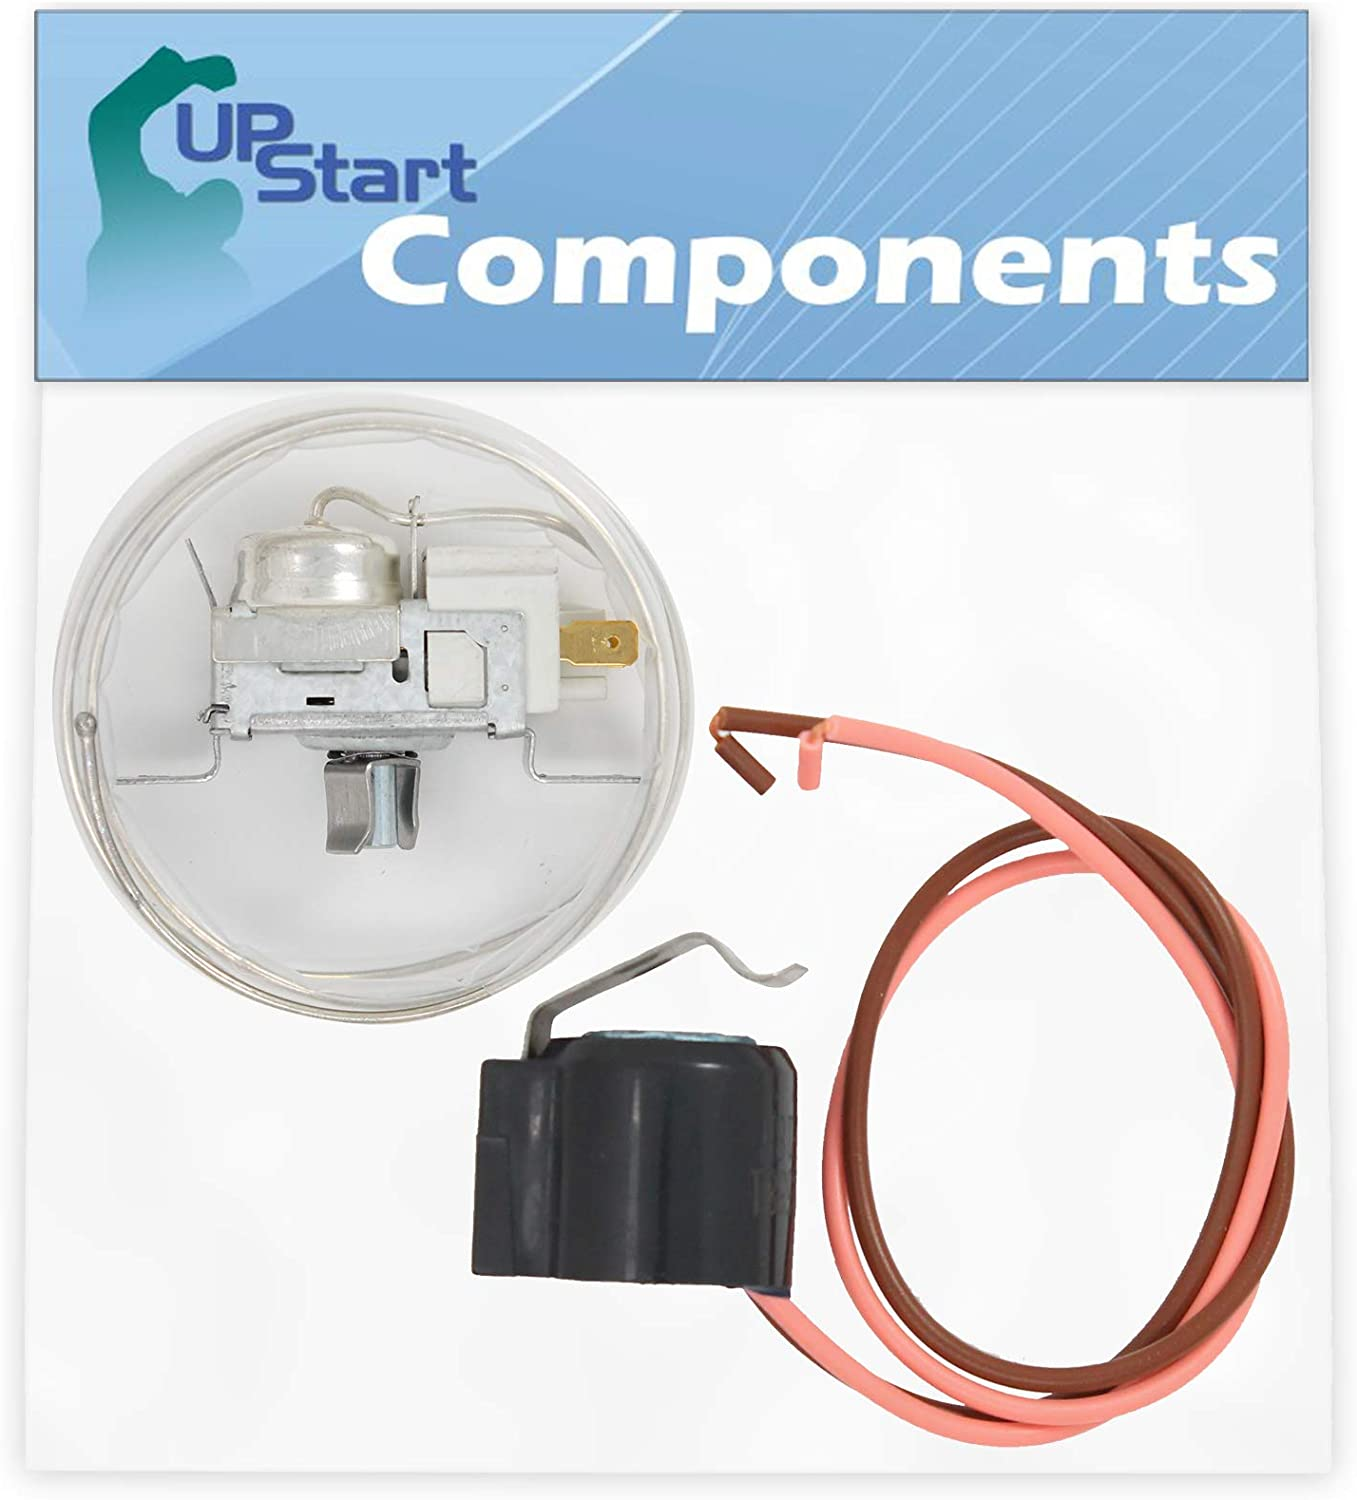 2198202 Cold Control Thermostat & W10225581 Defrost Thermostat Replacement for Whirlpool GD25SFXHS01 Refrigerator - Compatible with WP2198202 & W10225581